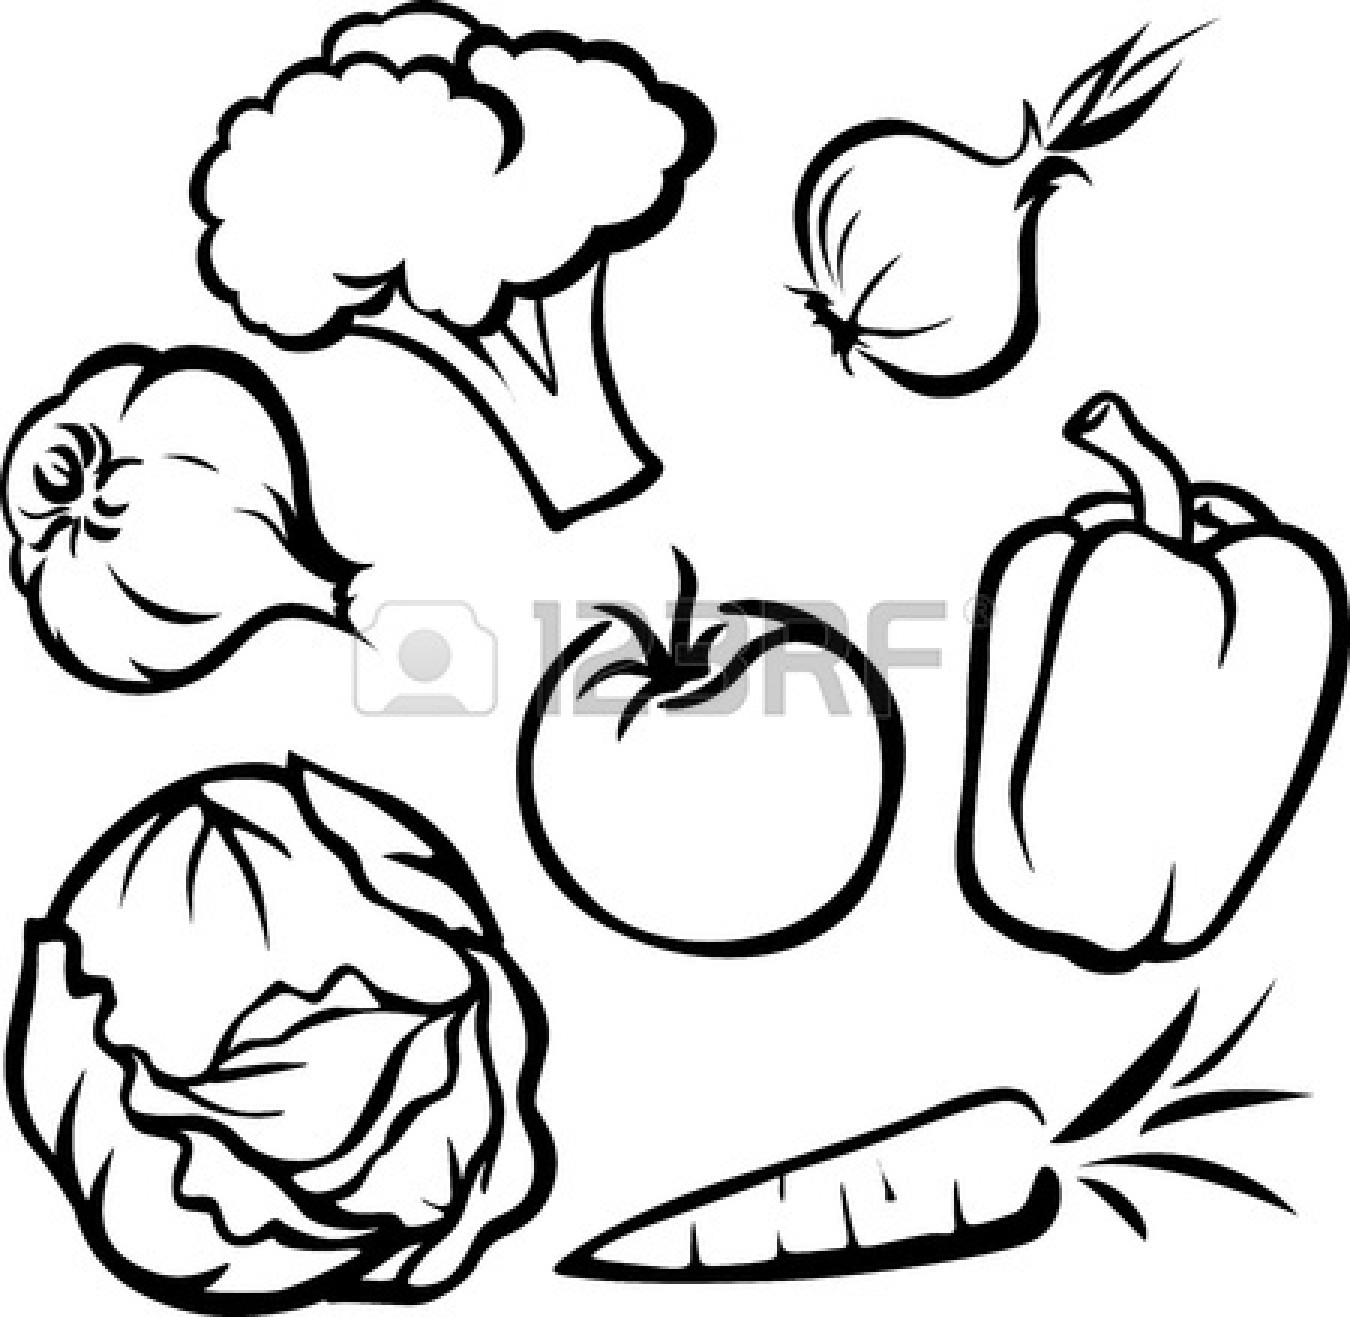 Vegetables Clipart Black And White Border